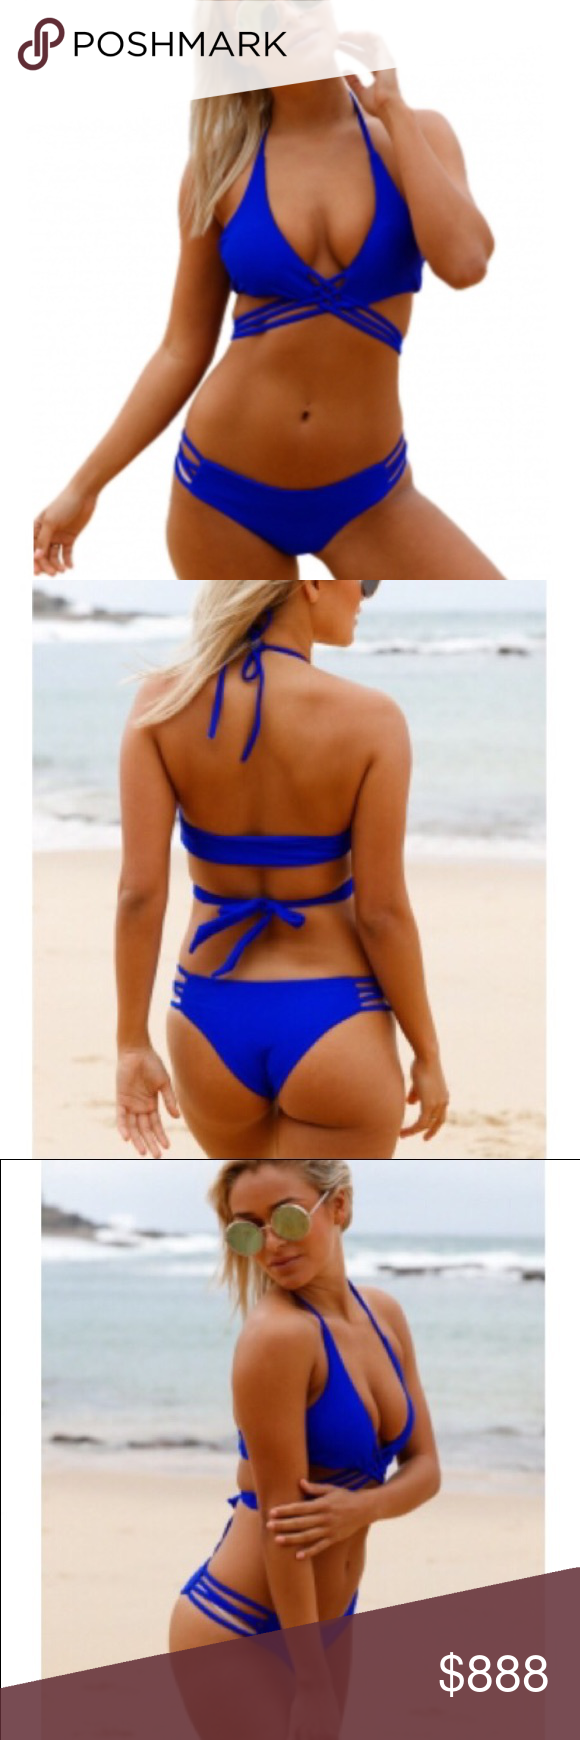 """SALE!! HPJUST INNEW Sexy Royal Blue Bikini JUST IN- NEW! Hot Hot Hot sexy bikini in royal blue! Runs small and has very cheeky bottom!  Host Pick """"Best in Boutiques"""" 5/17/17  Swim Bikinis"""